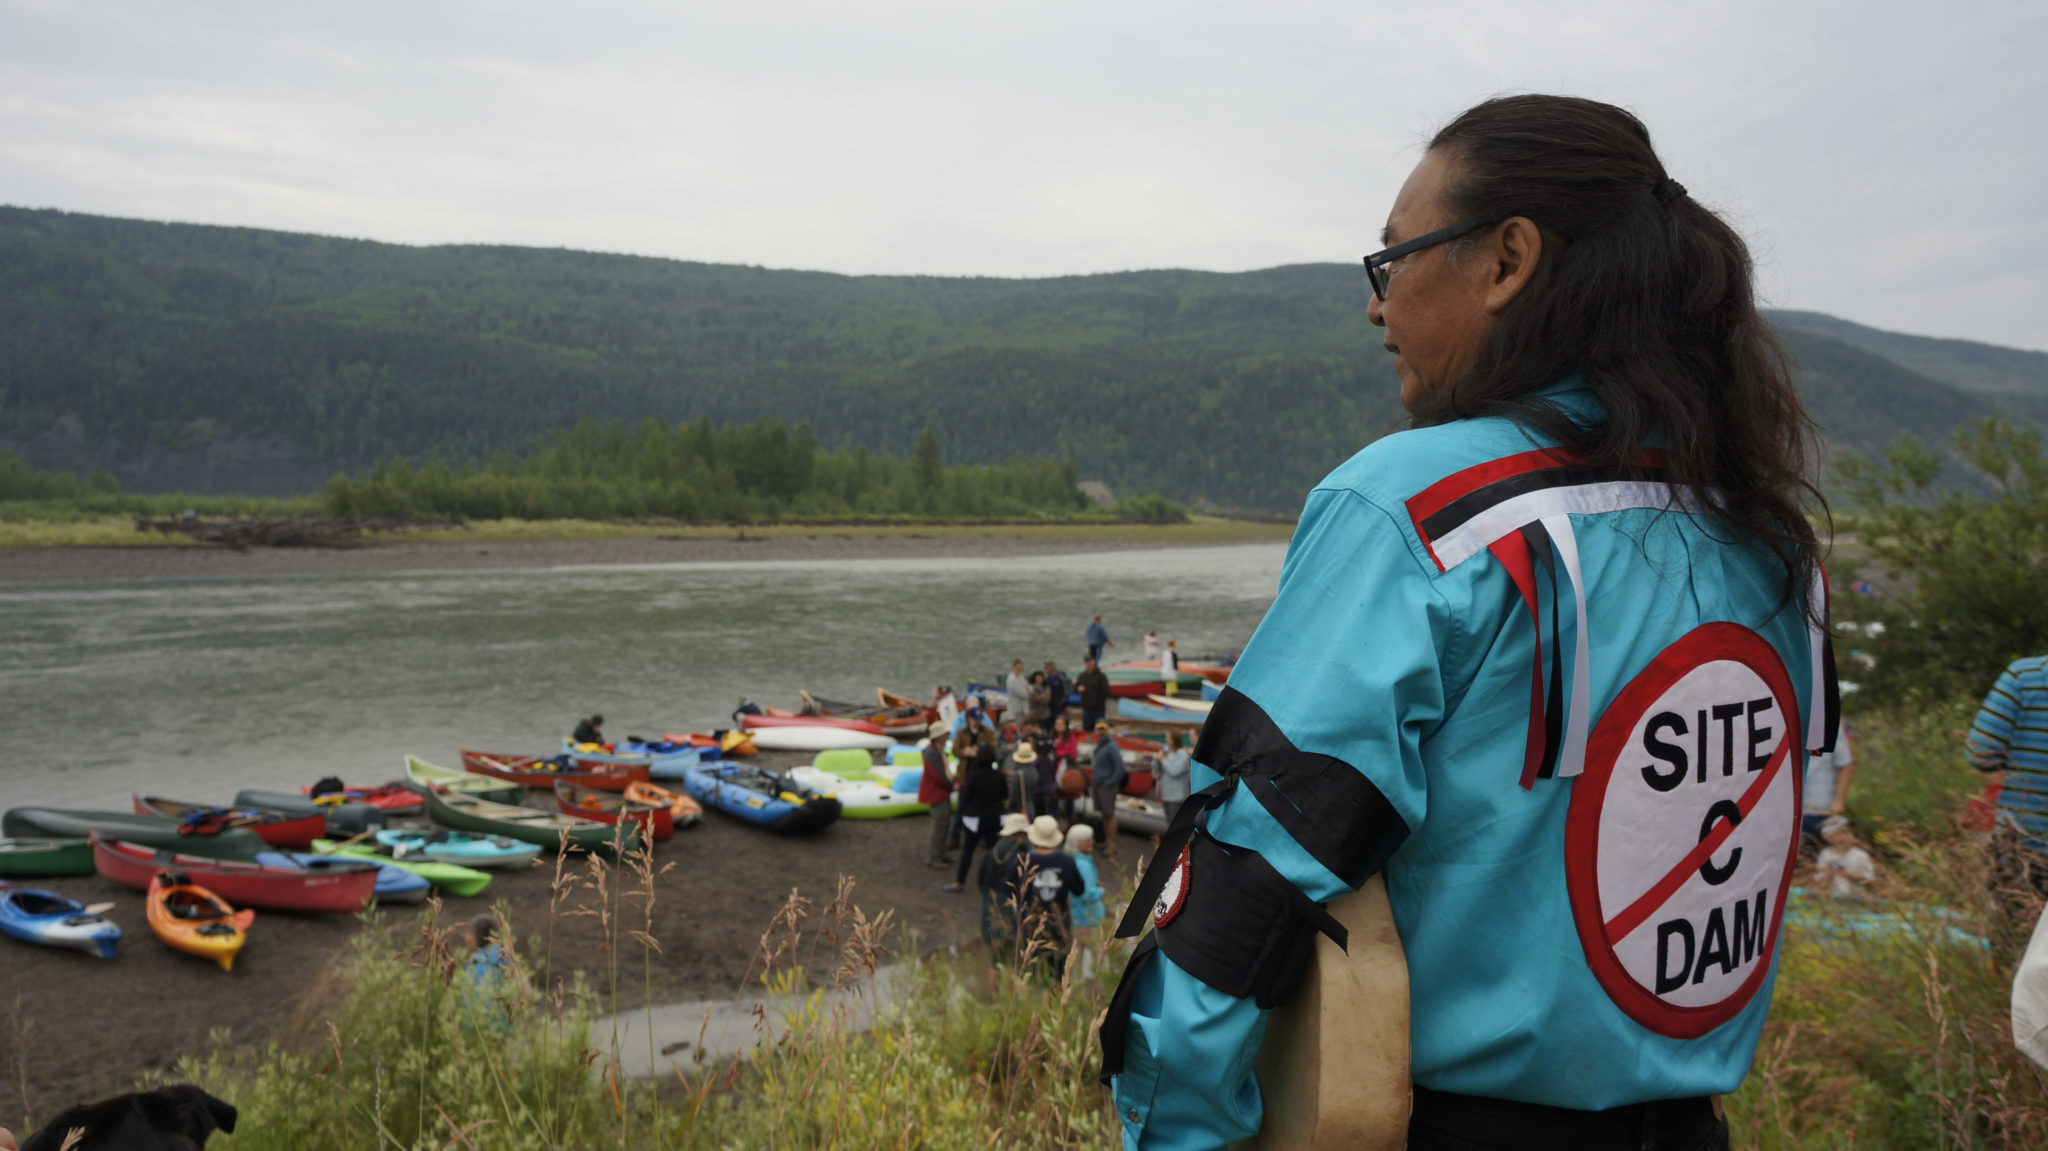 Canada: The point of no return: The human rights of Indigenous peoples in Canada threatened by the site c dam